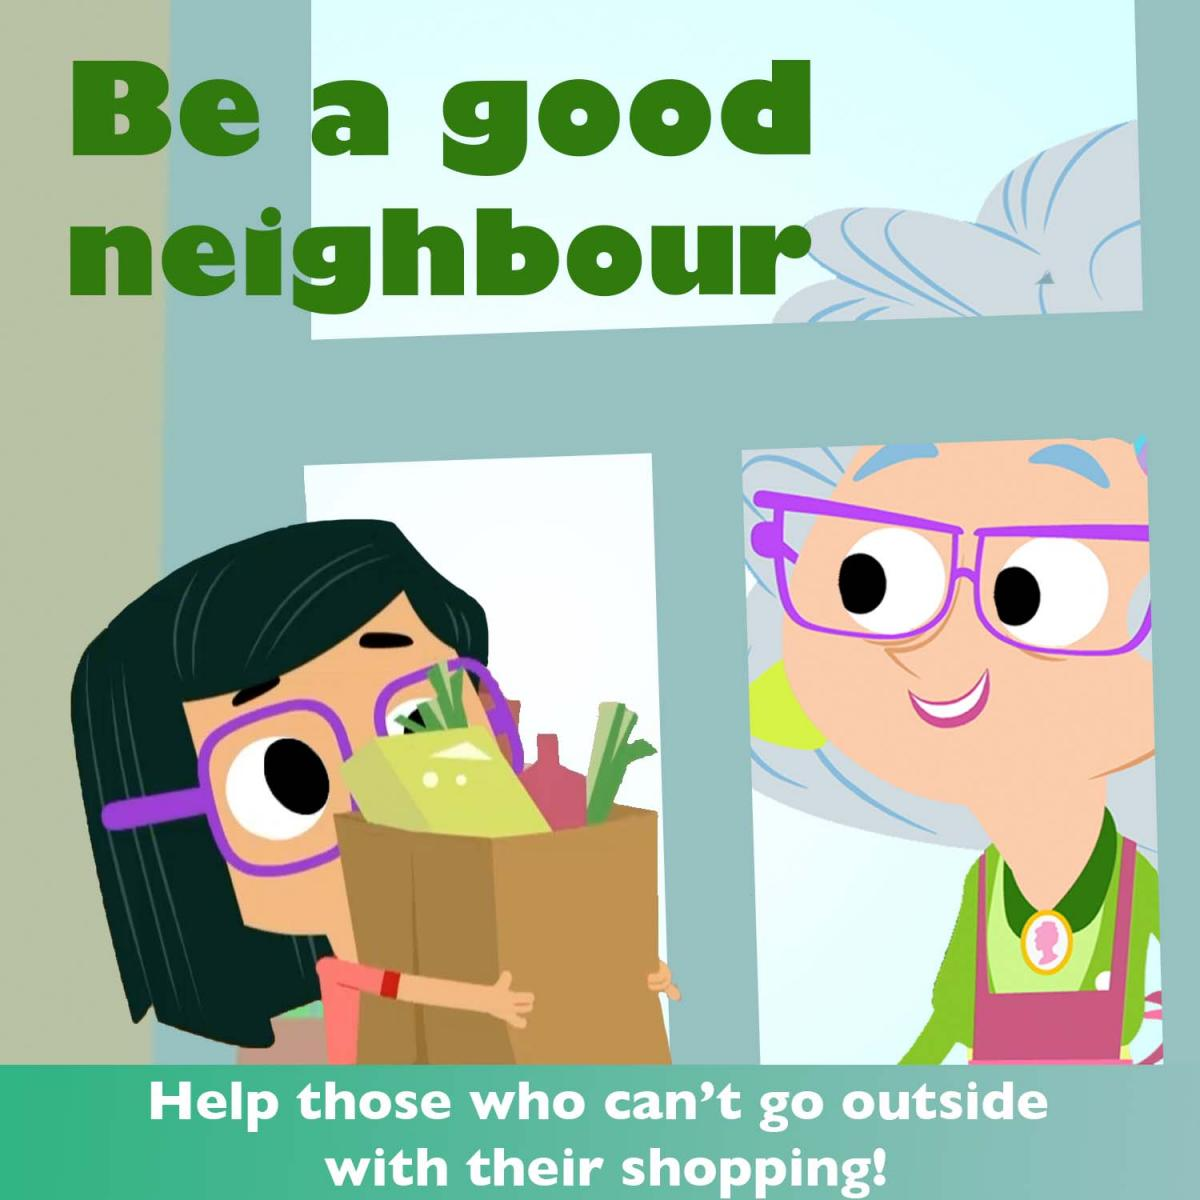 Be a good neighbour